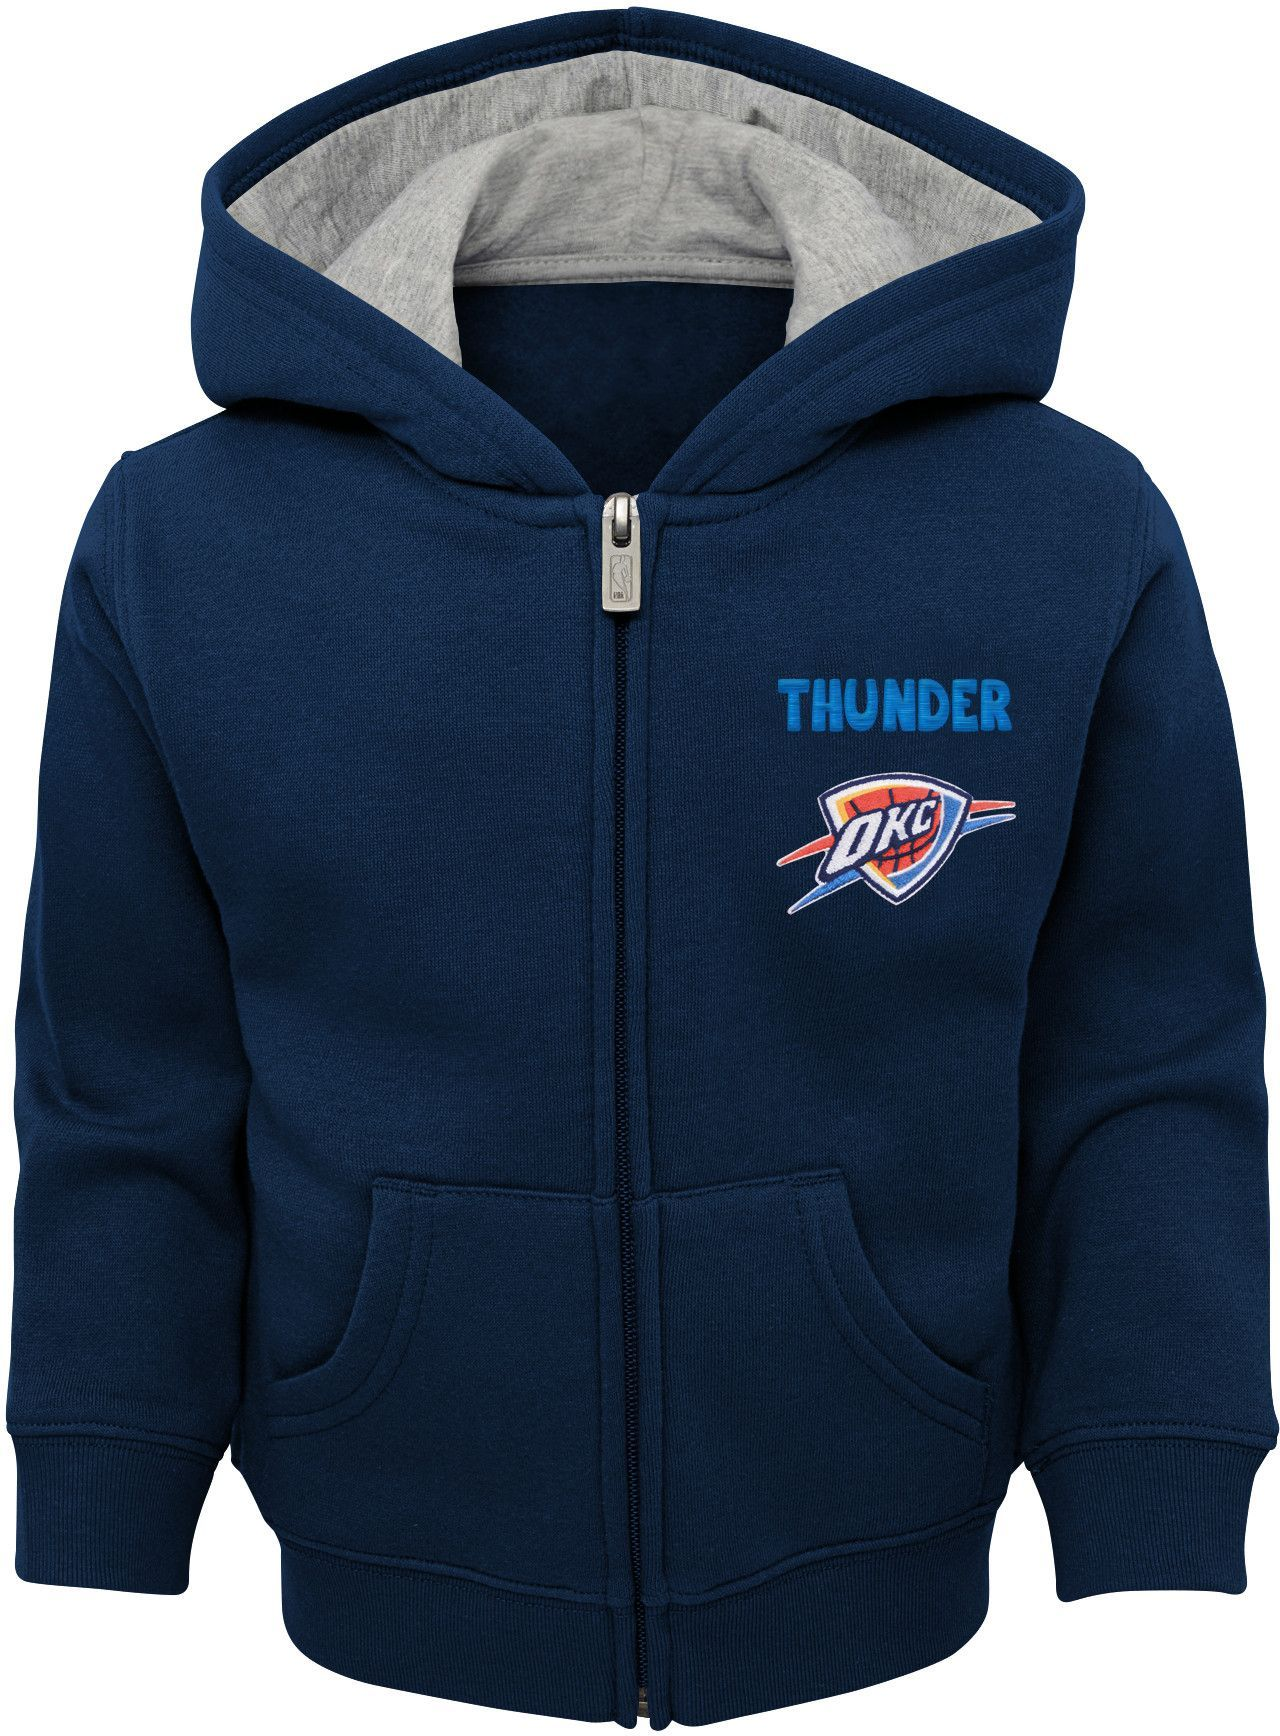 new arrival 31745 9c469 Outerstuff Toddler Oklahoma City Thunder Hoodie, Size: 2T ...